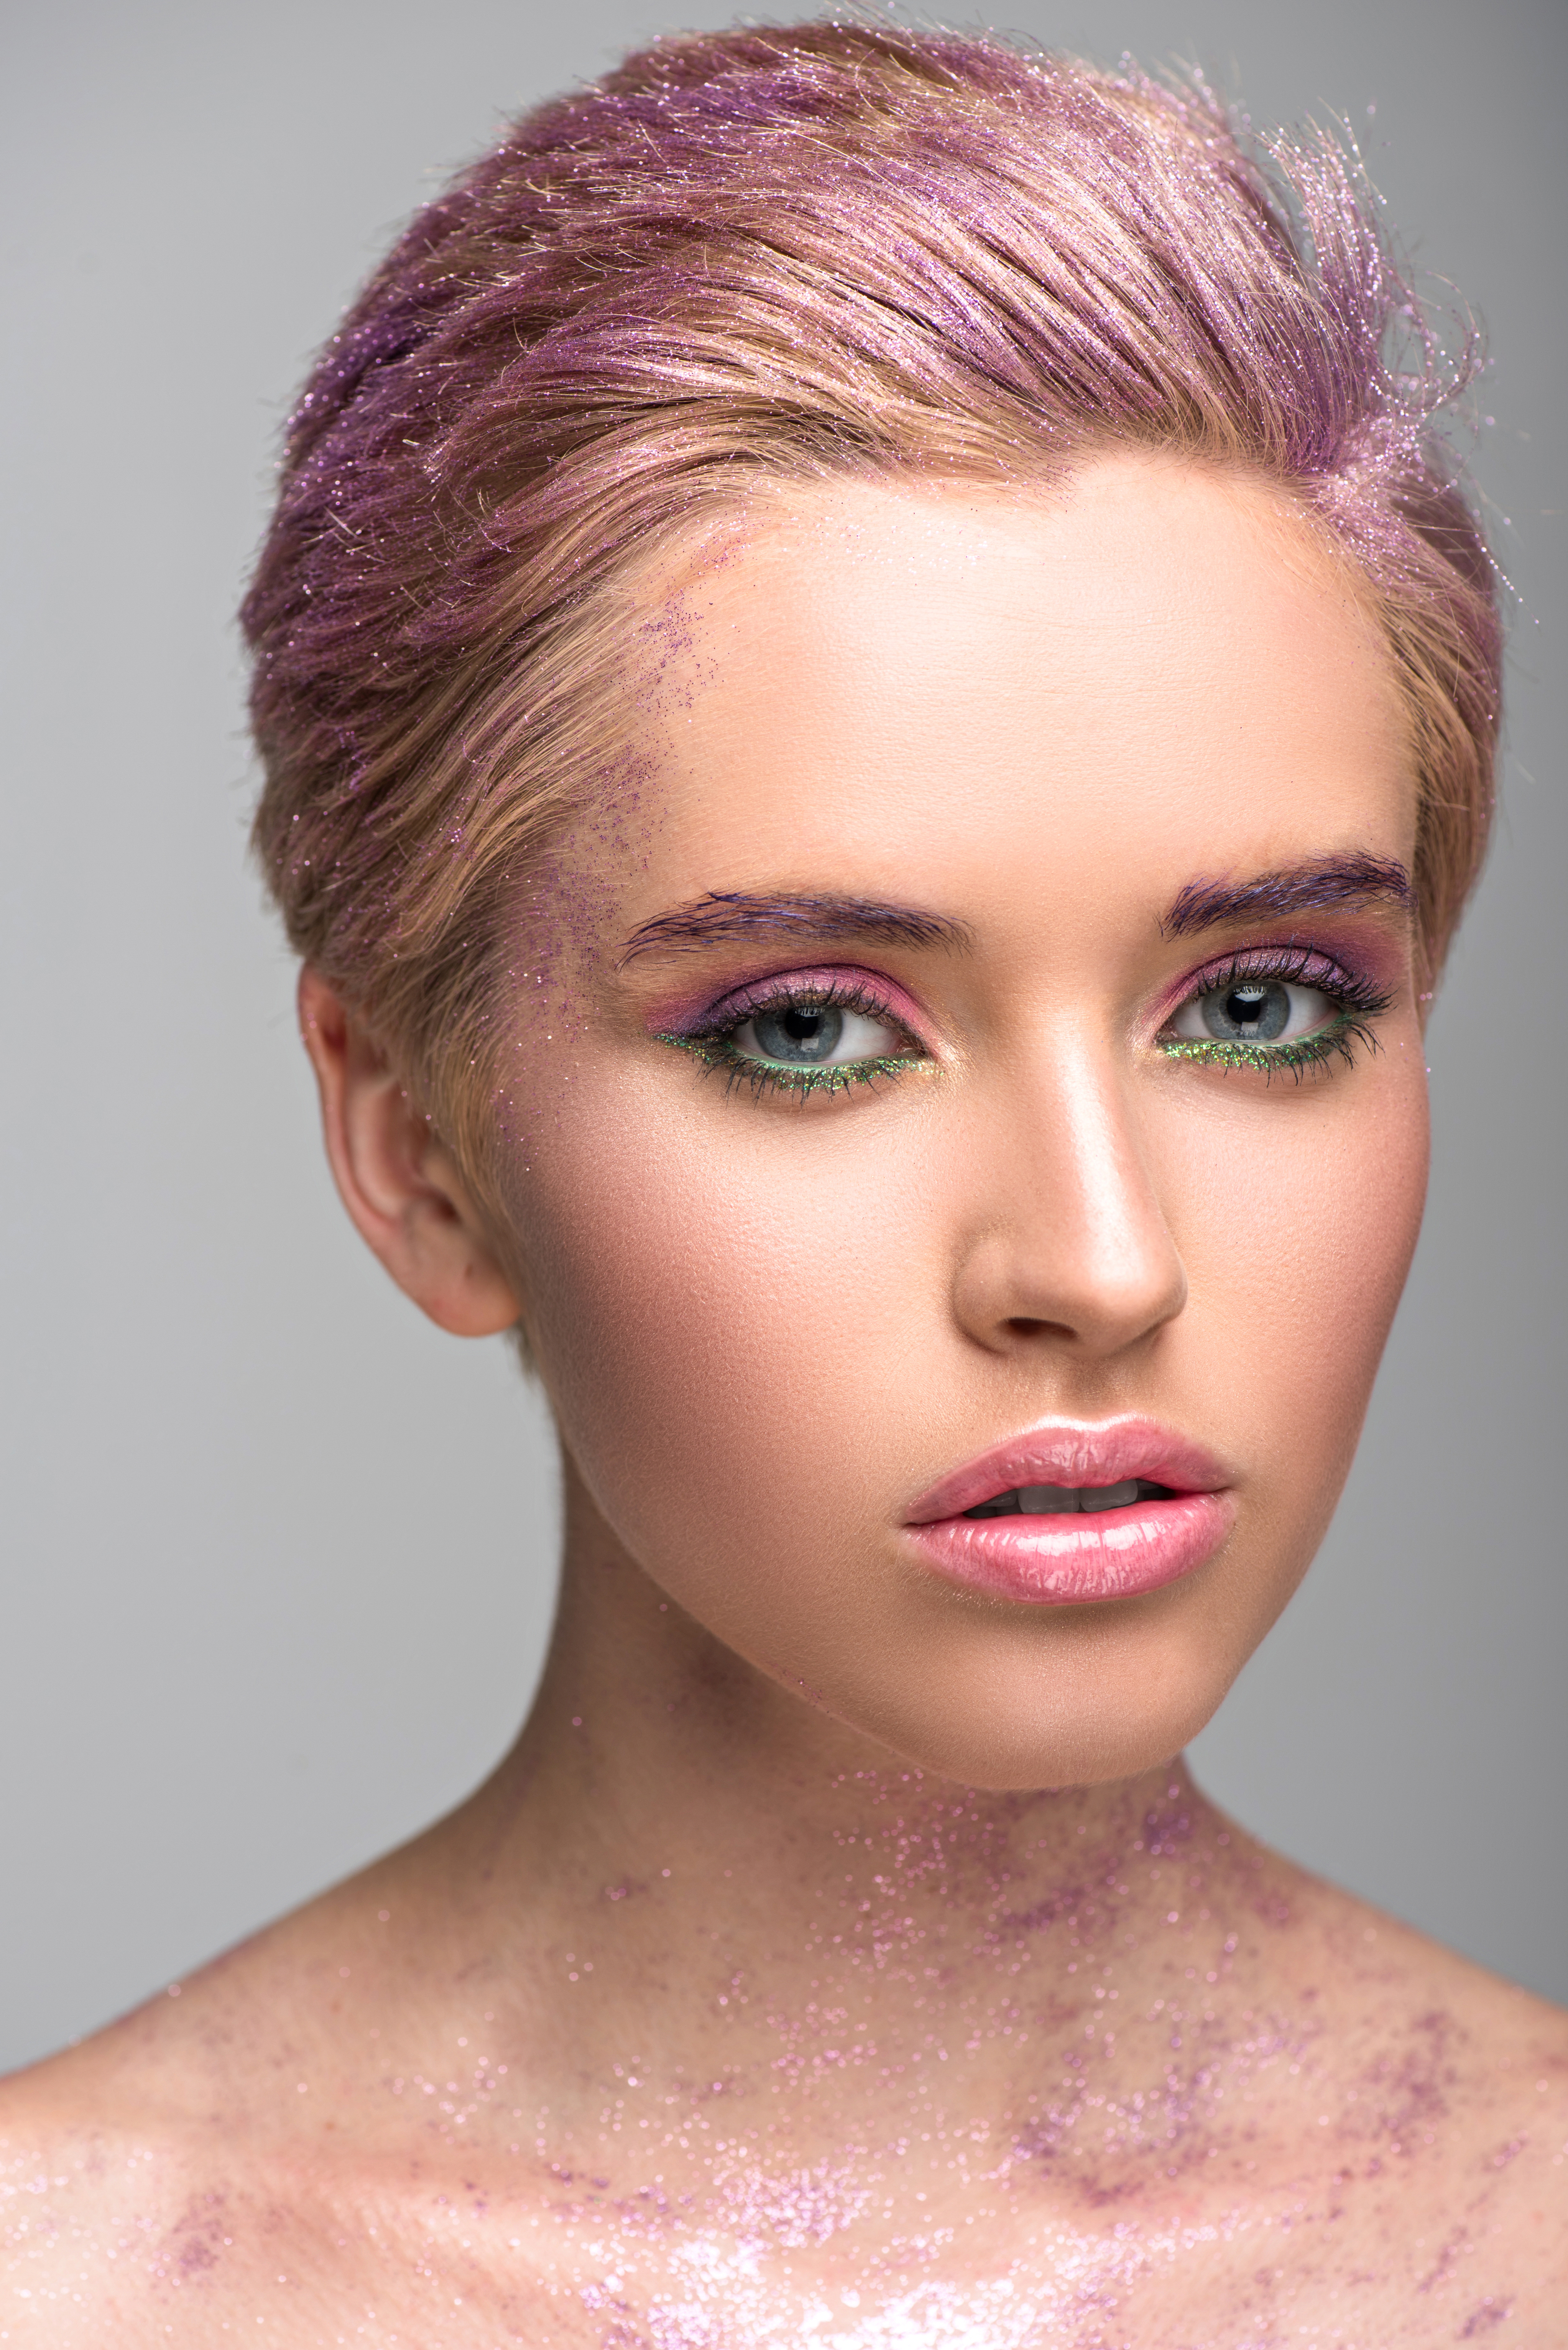 attractive woman with violet glitter on face and hair looking at camera isolated on grey